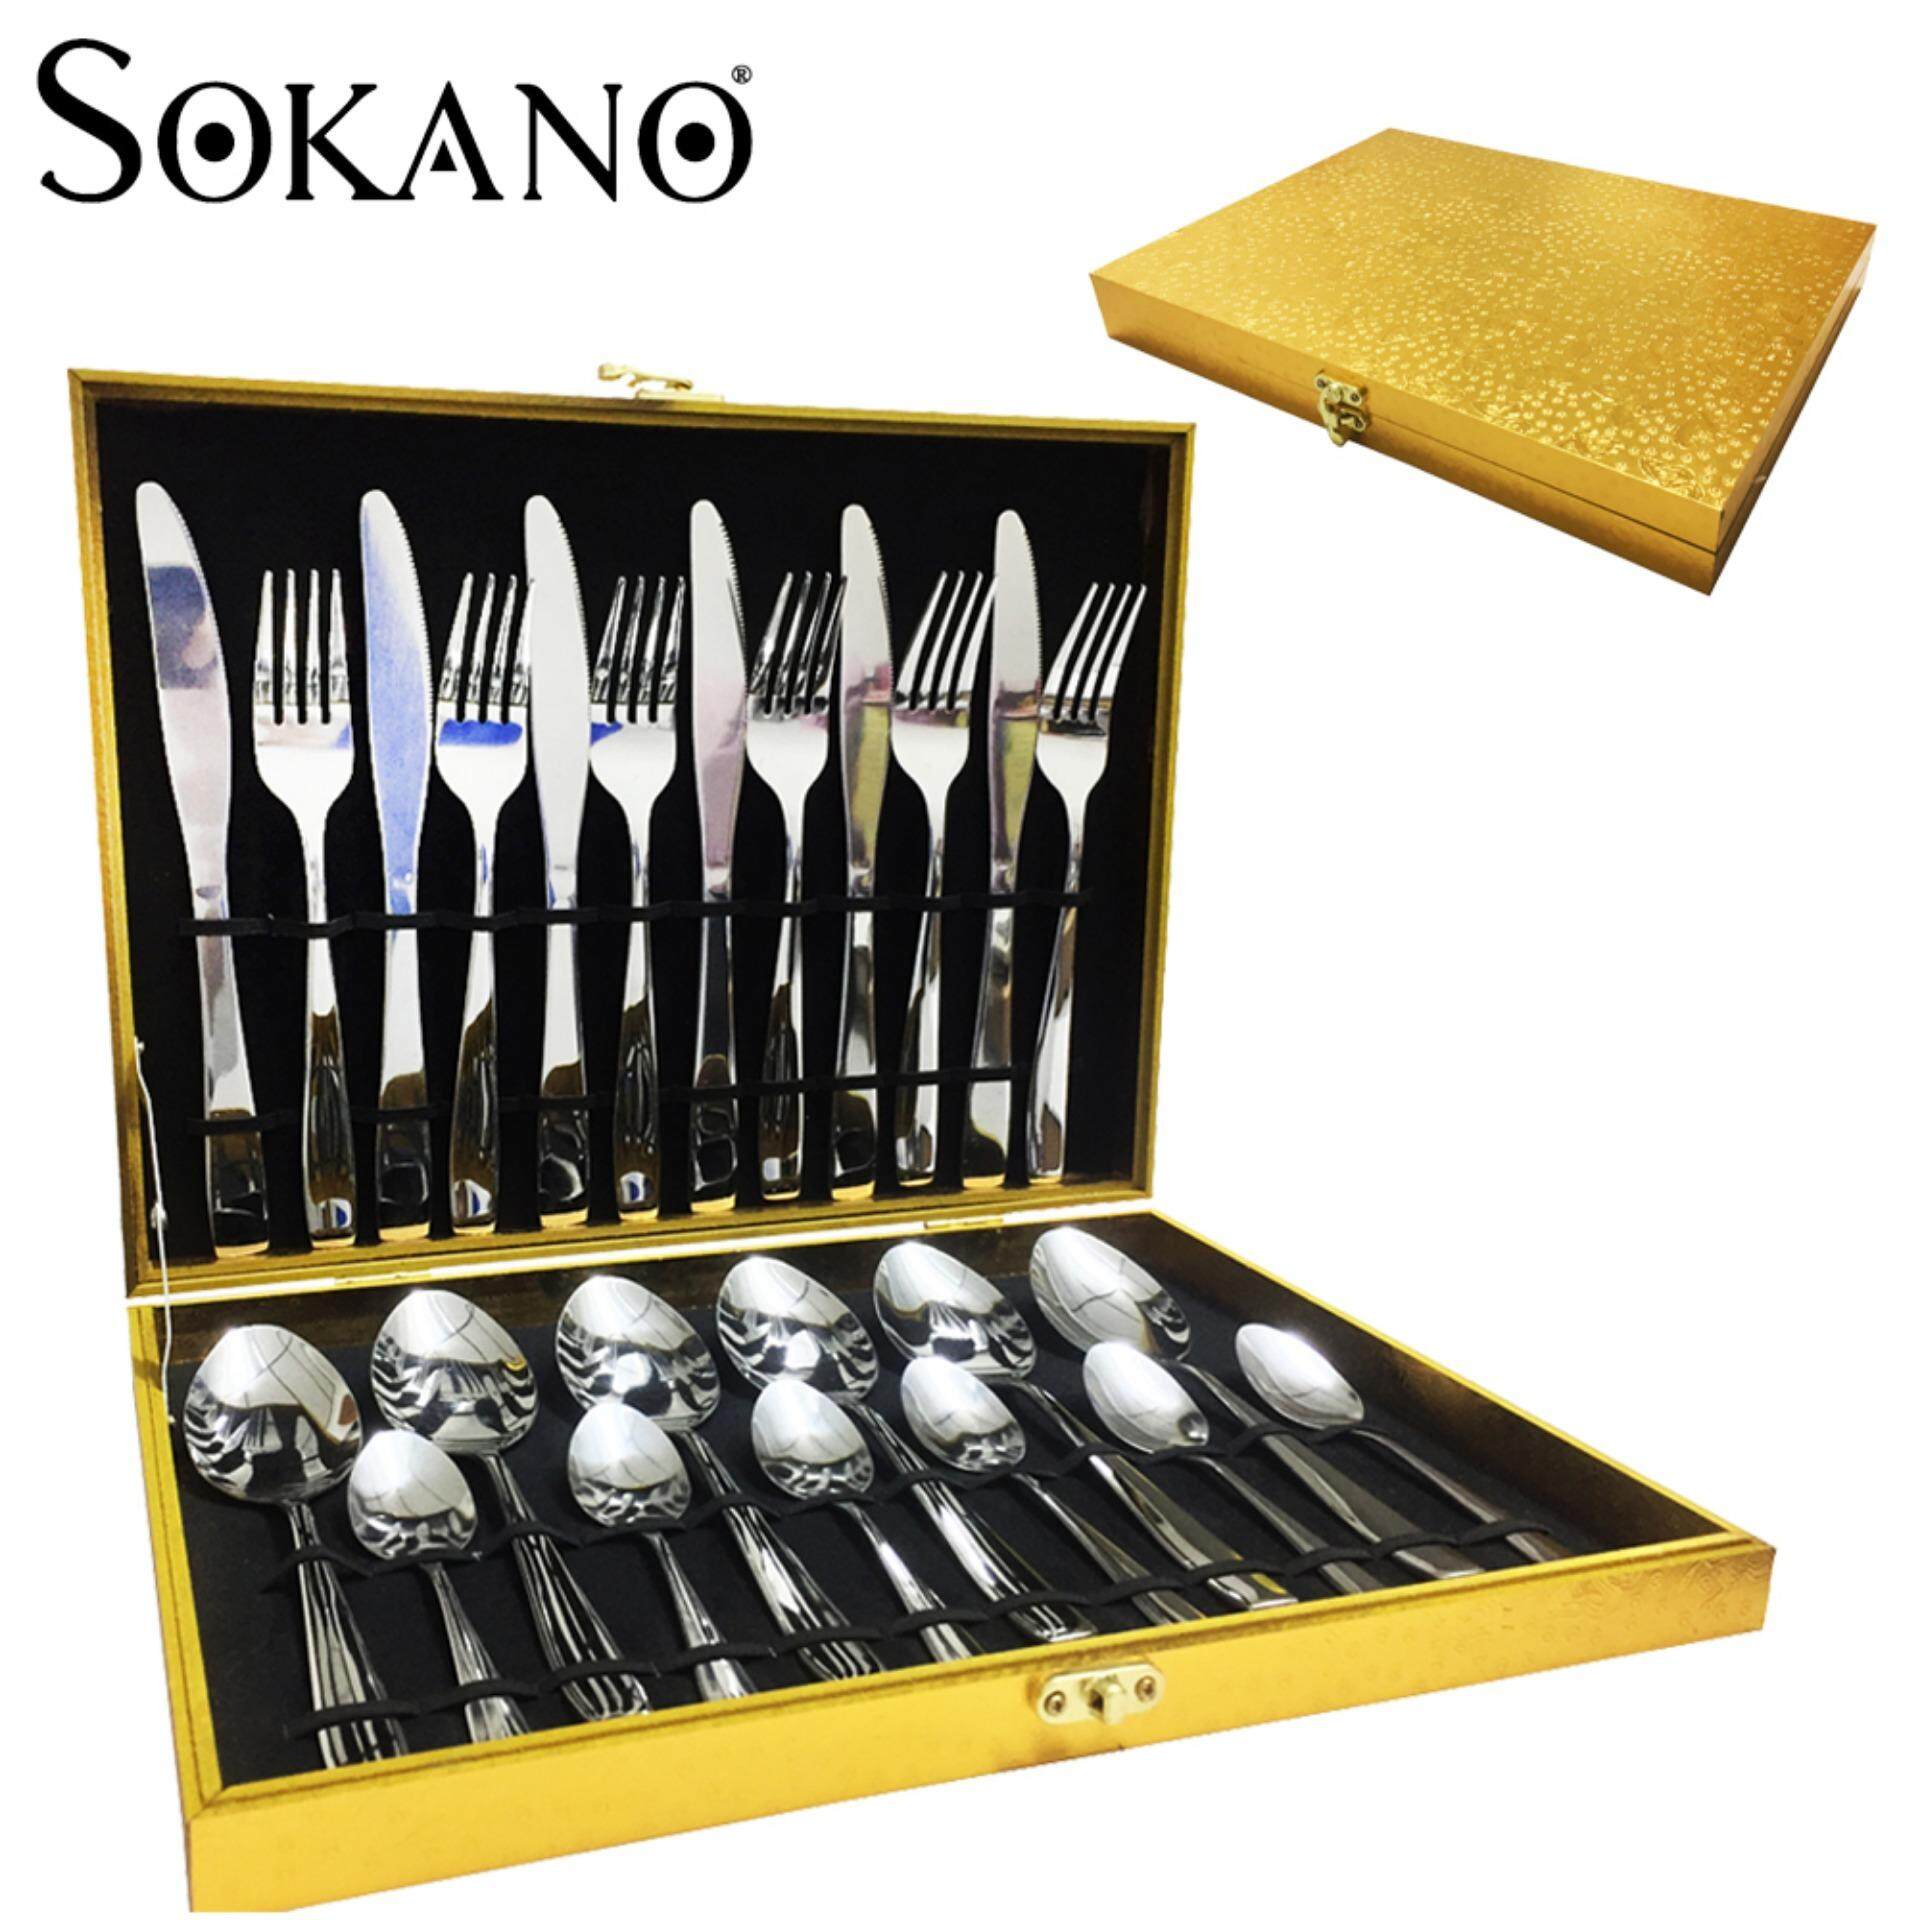 SOKANO Exclusive Premium 24K Gold Plated Floral Gift Box 24 PCS Stainless Steel Cutlery Best Gift Set